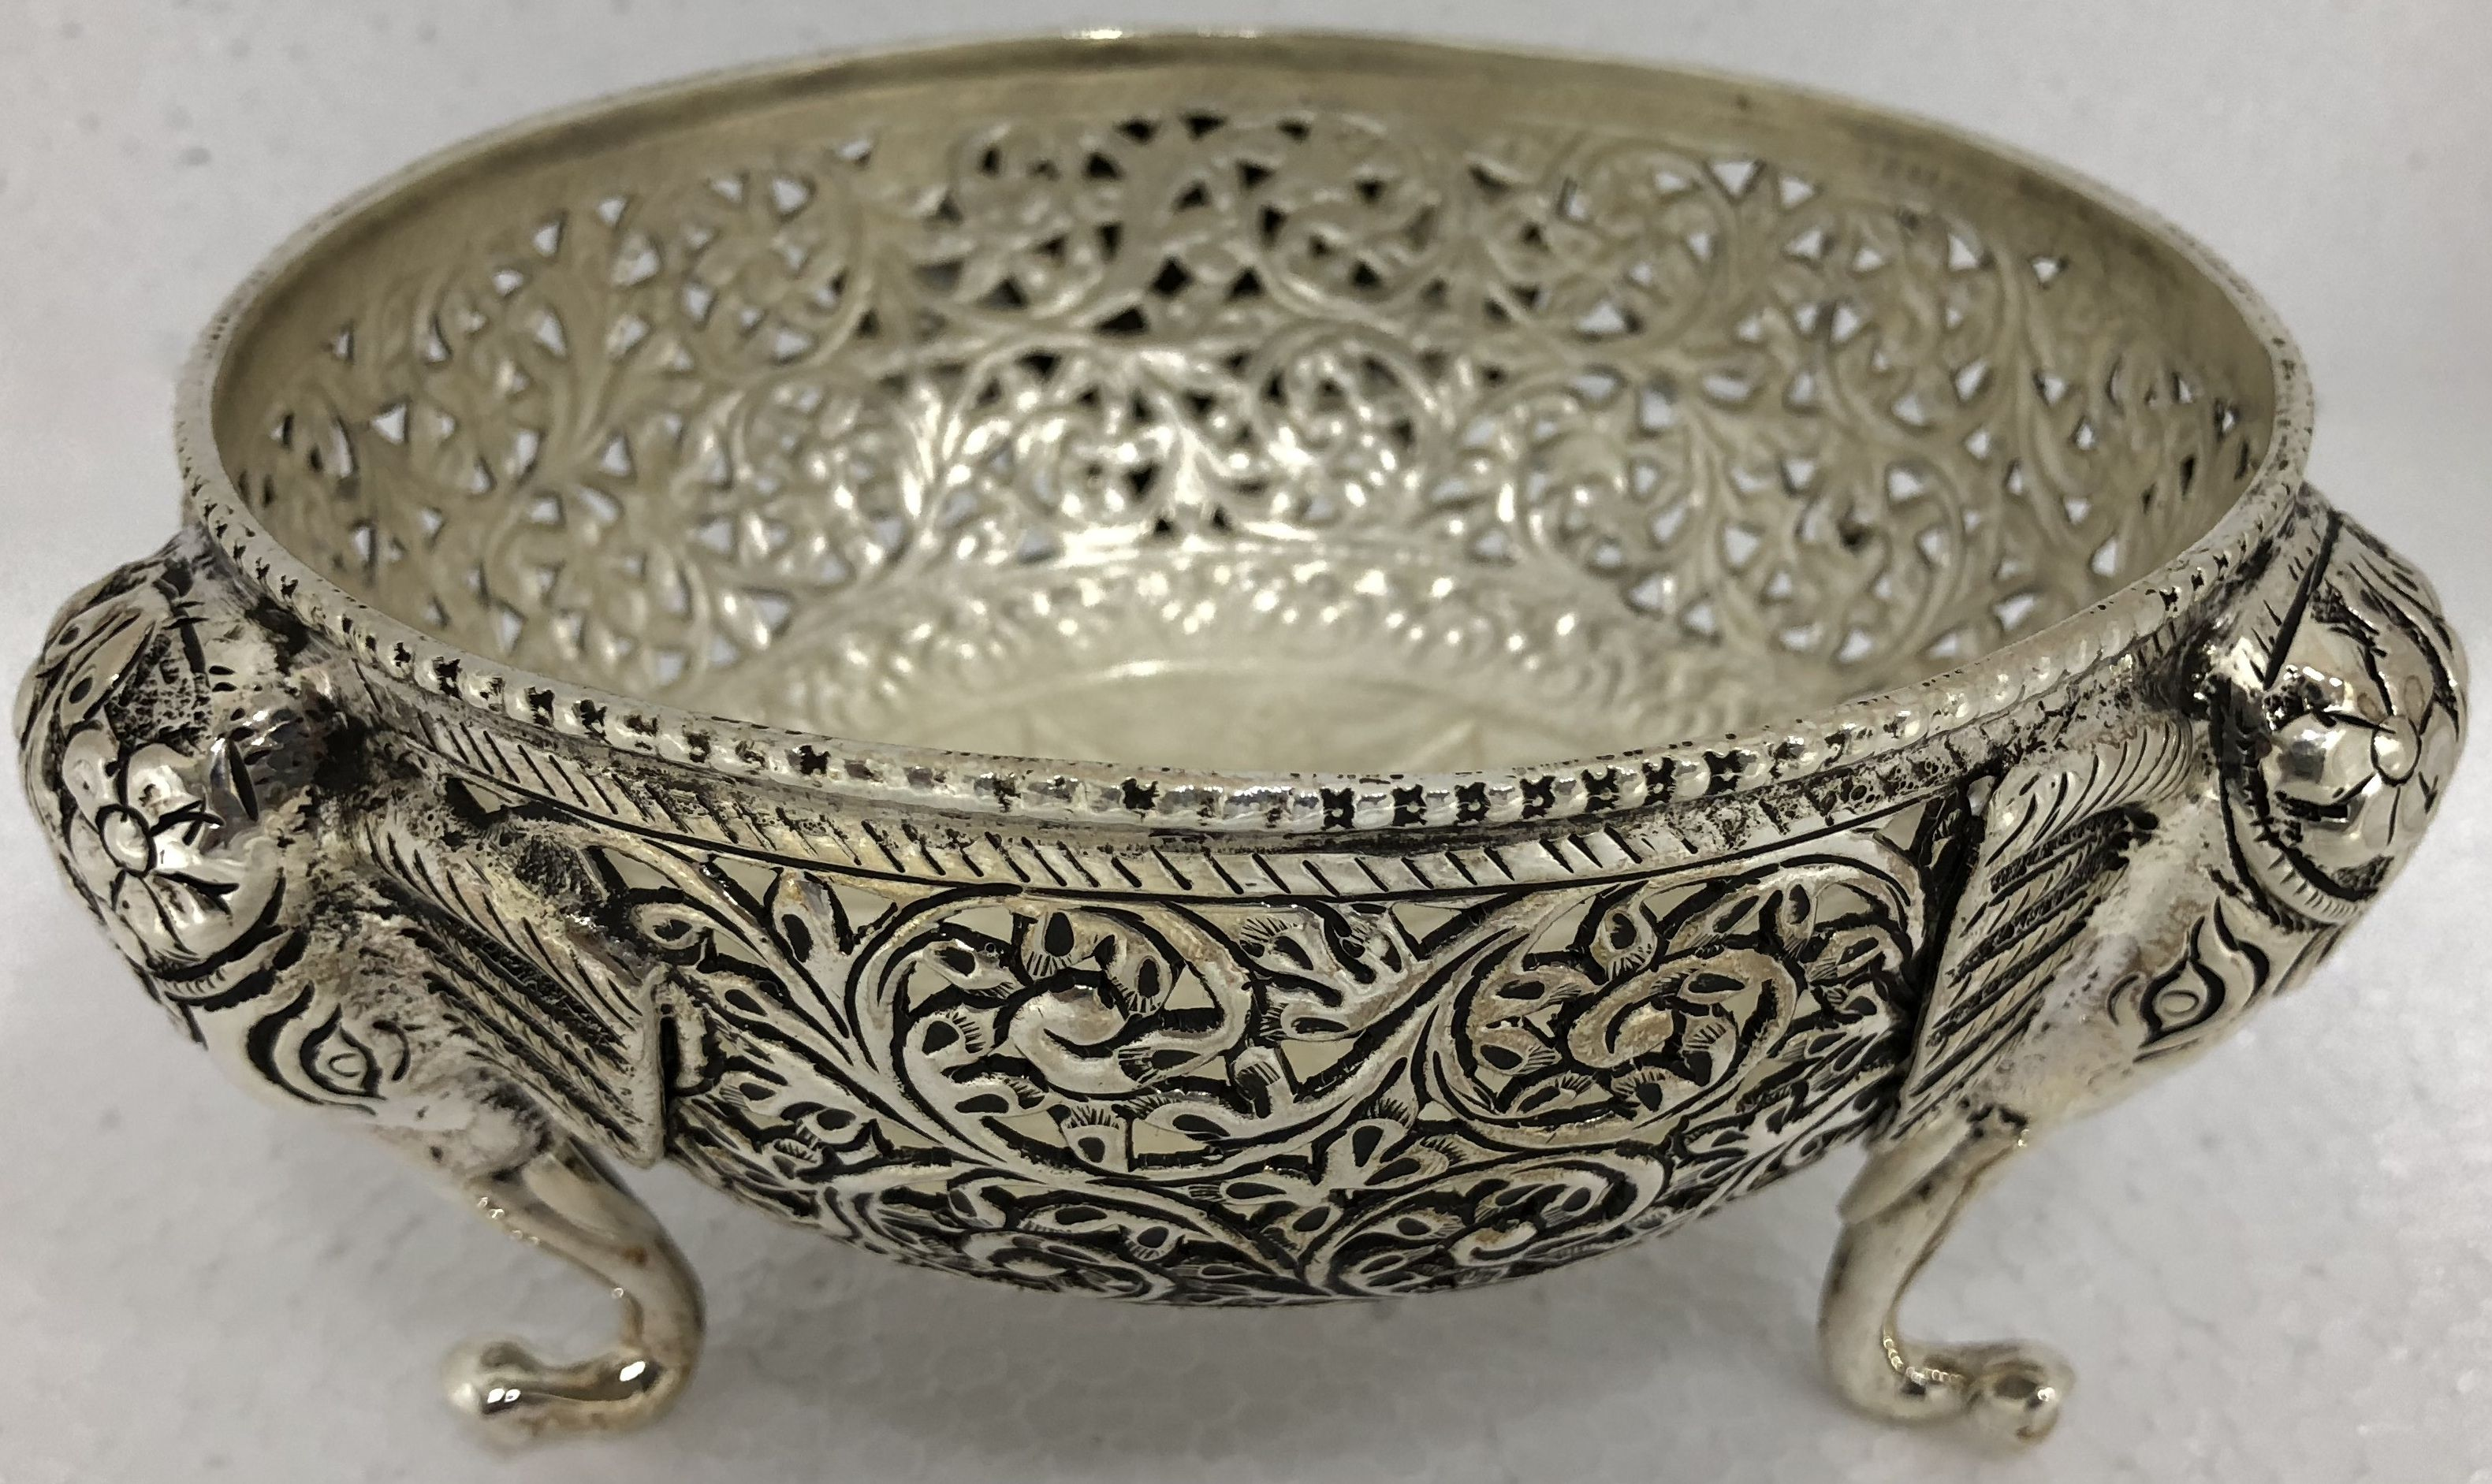 Punch bowls decoration decorative bowls sterling silver home decor homemade home